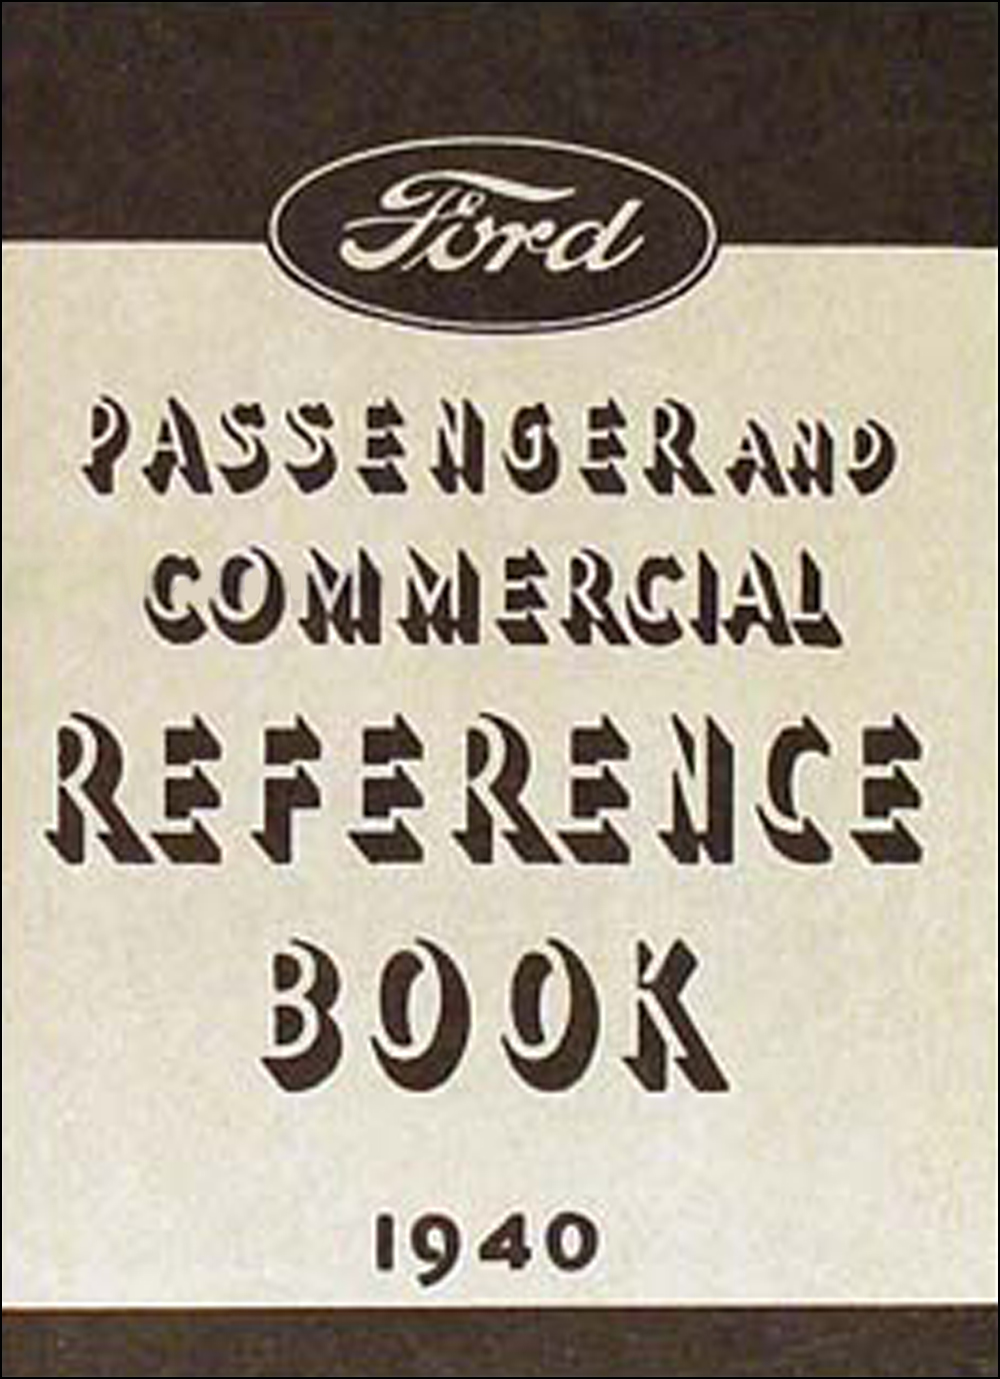 1940 Ford Car & Pickup Owner's Manual Reprint. click on thumbnail to zoom